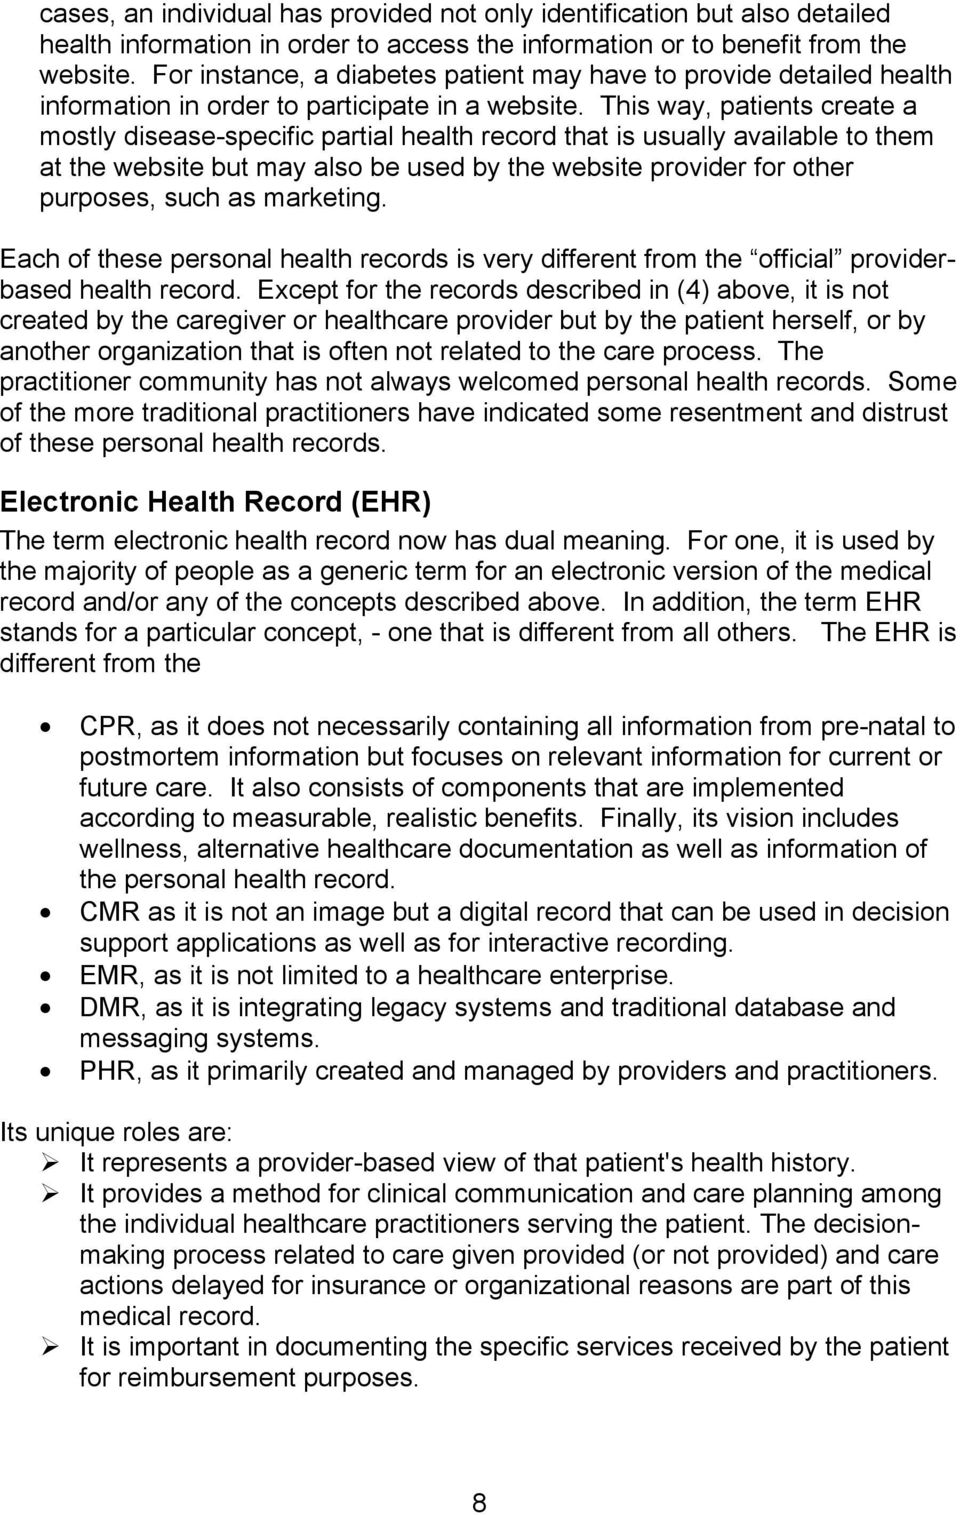 This way, patients create a mostly disease-specific partial health record that is usually available to them at the website but may also be used by the website provider for other purposes, such as